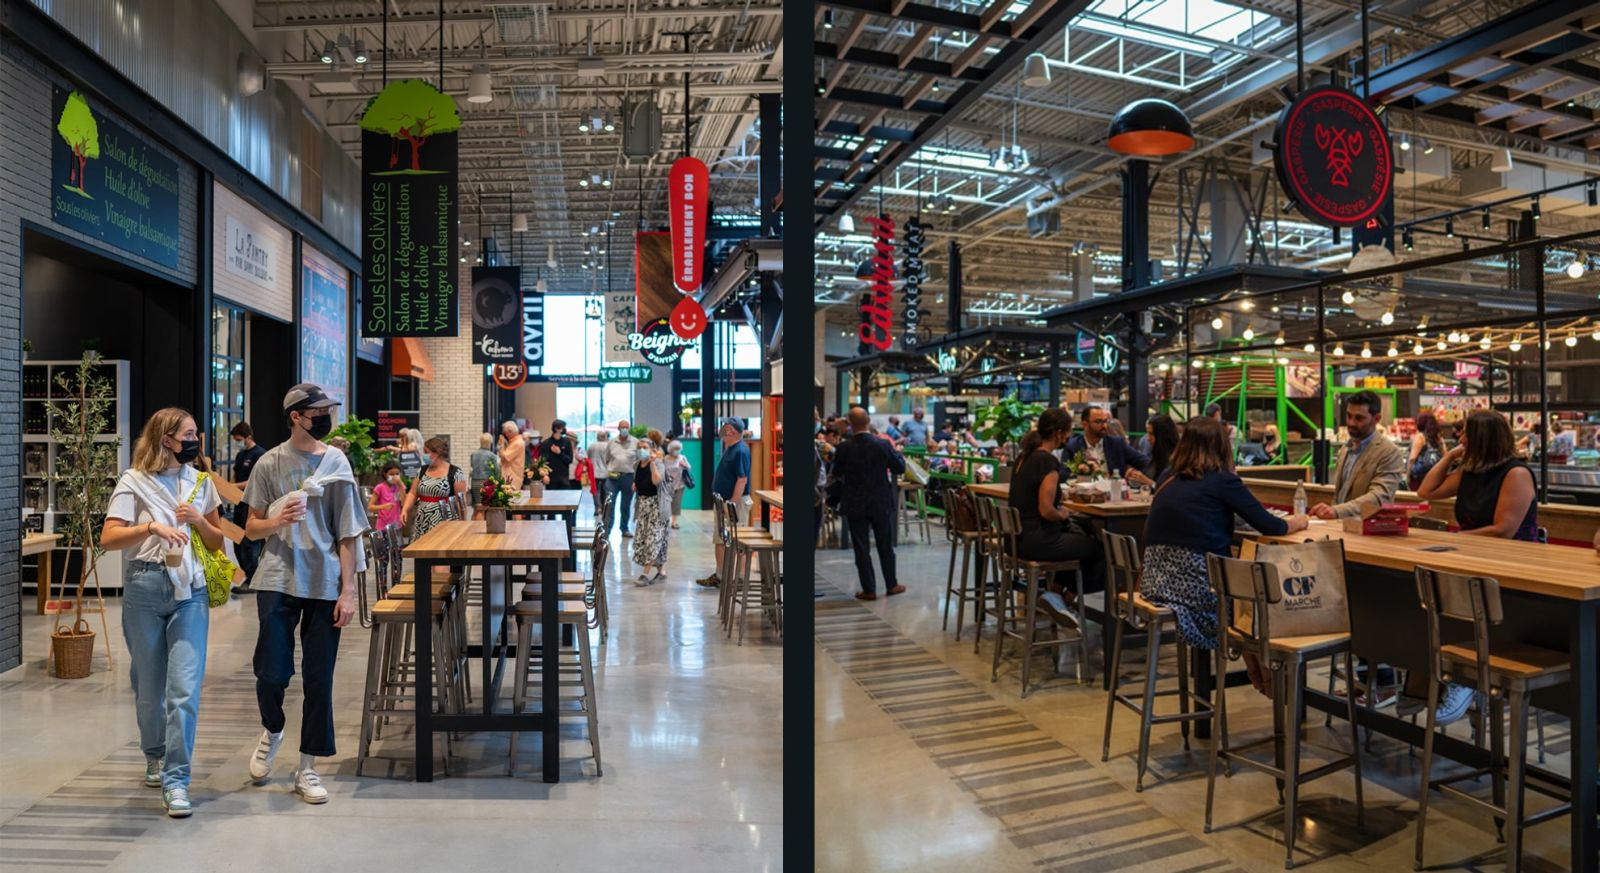 More than 40 local merchants and artisans coming together under one roof